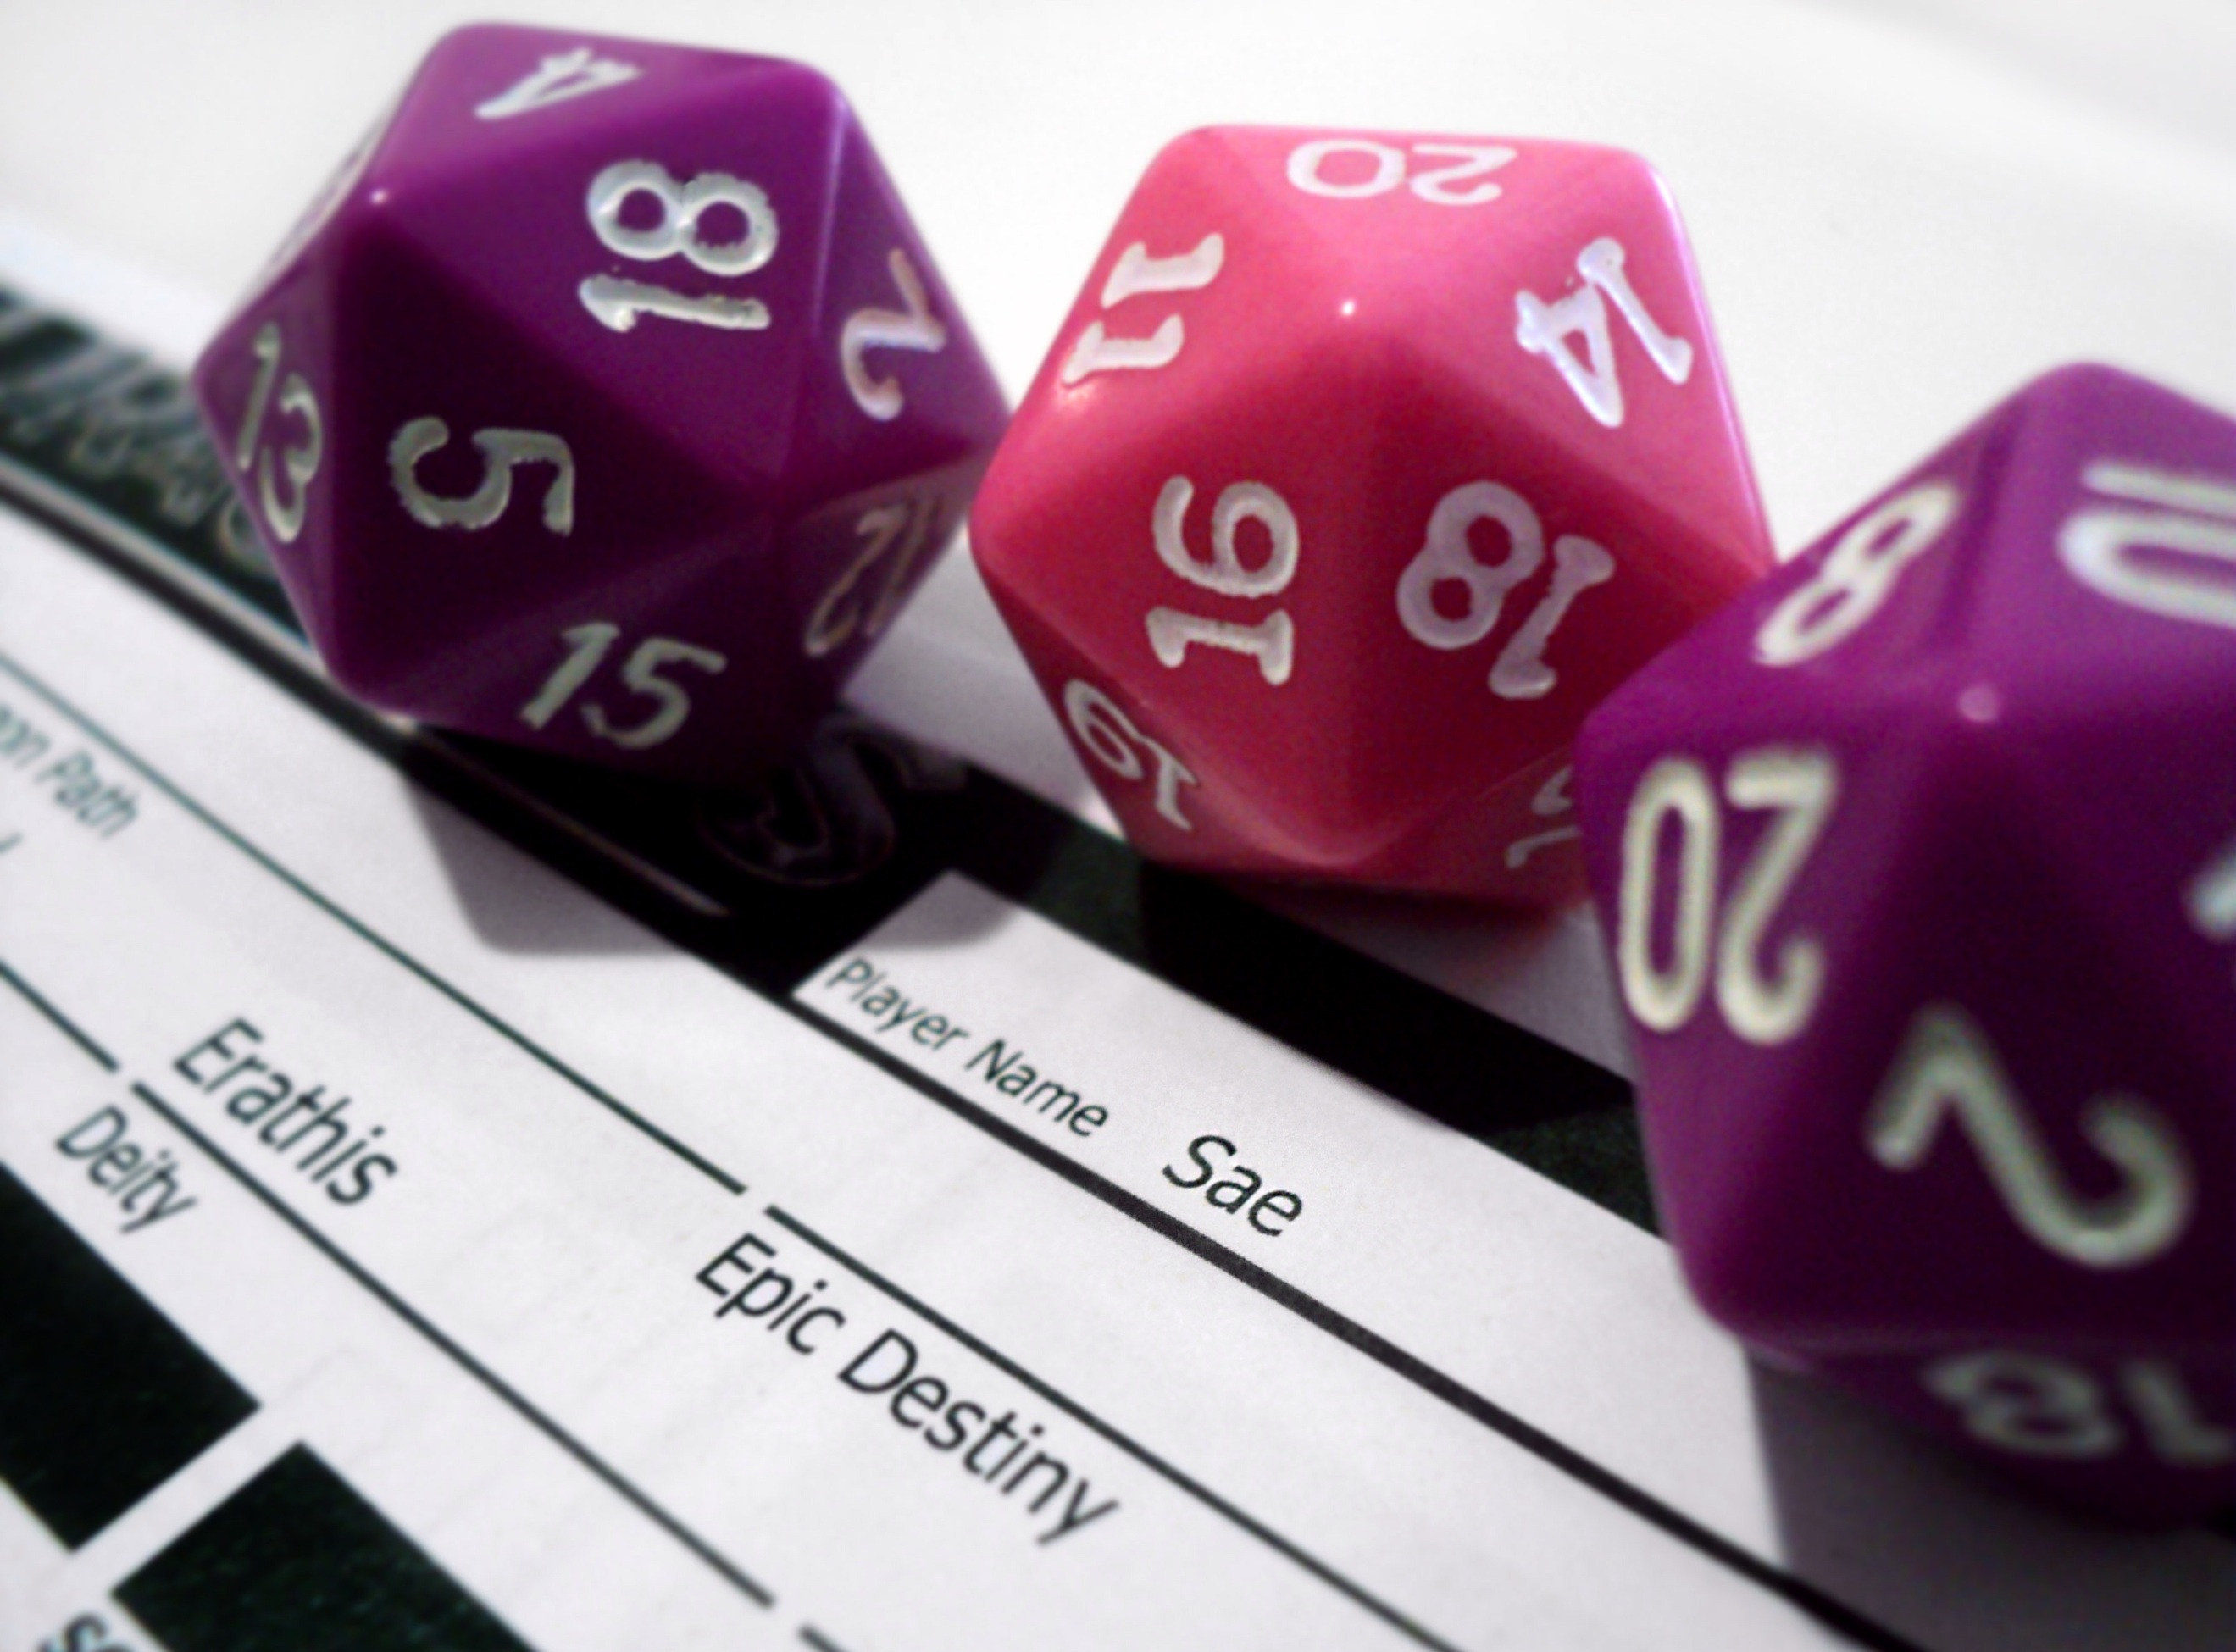 Enterprise Gamification Is a Spoon Full of Sugar